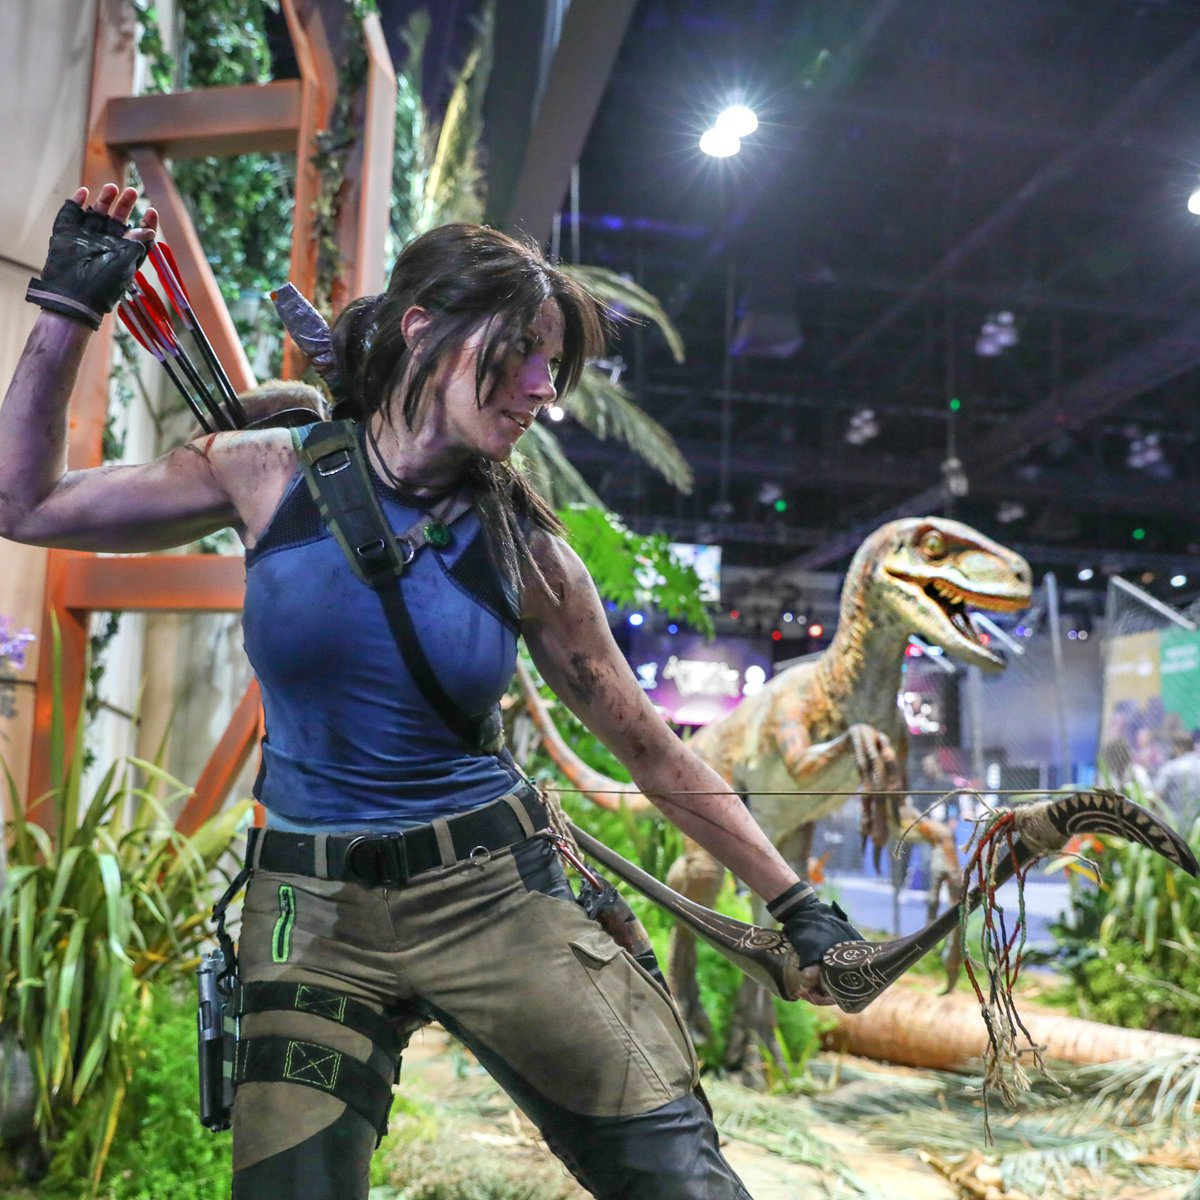 Clever girl.  At the @JW_Evolution  booth. https://t.co/SRZSj2r7Vj